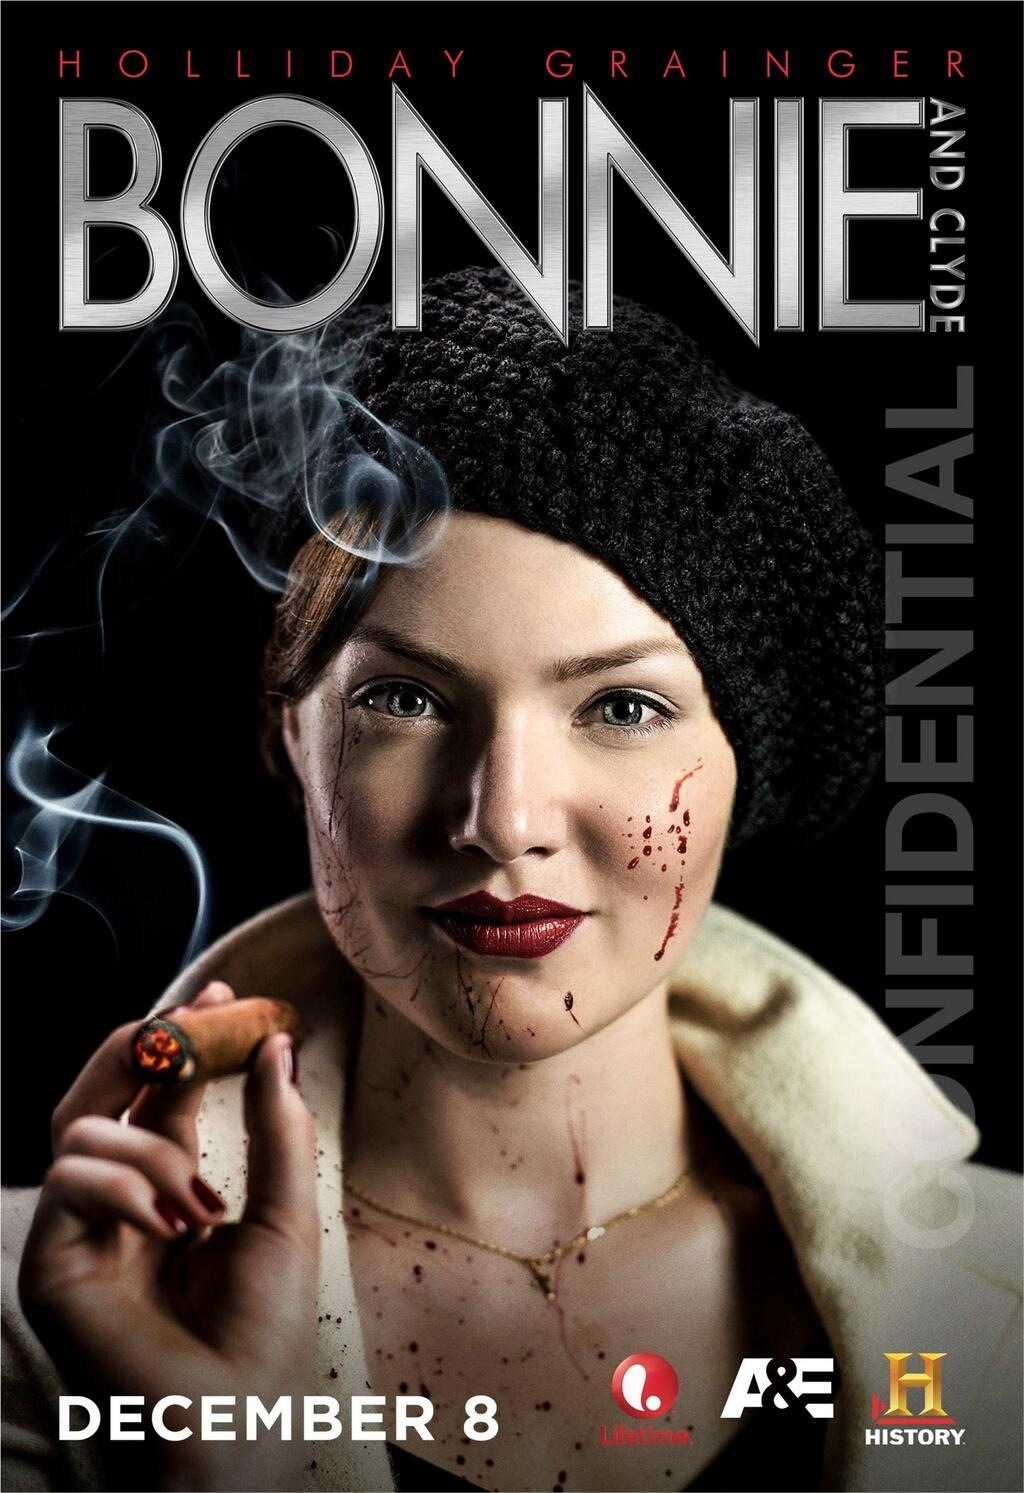 Makeup Artist, Bonnie and Clyde